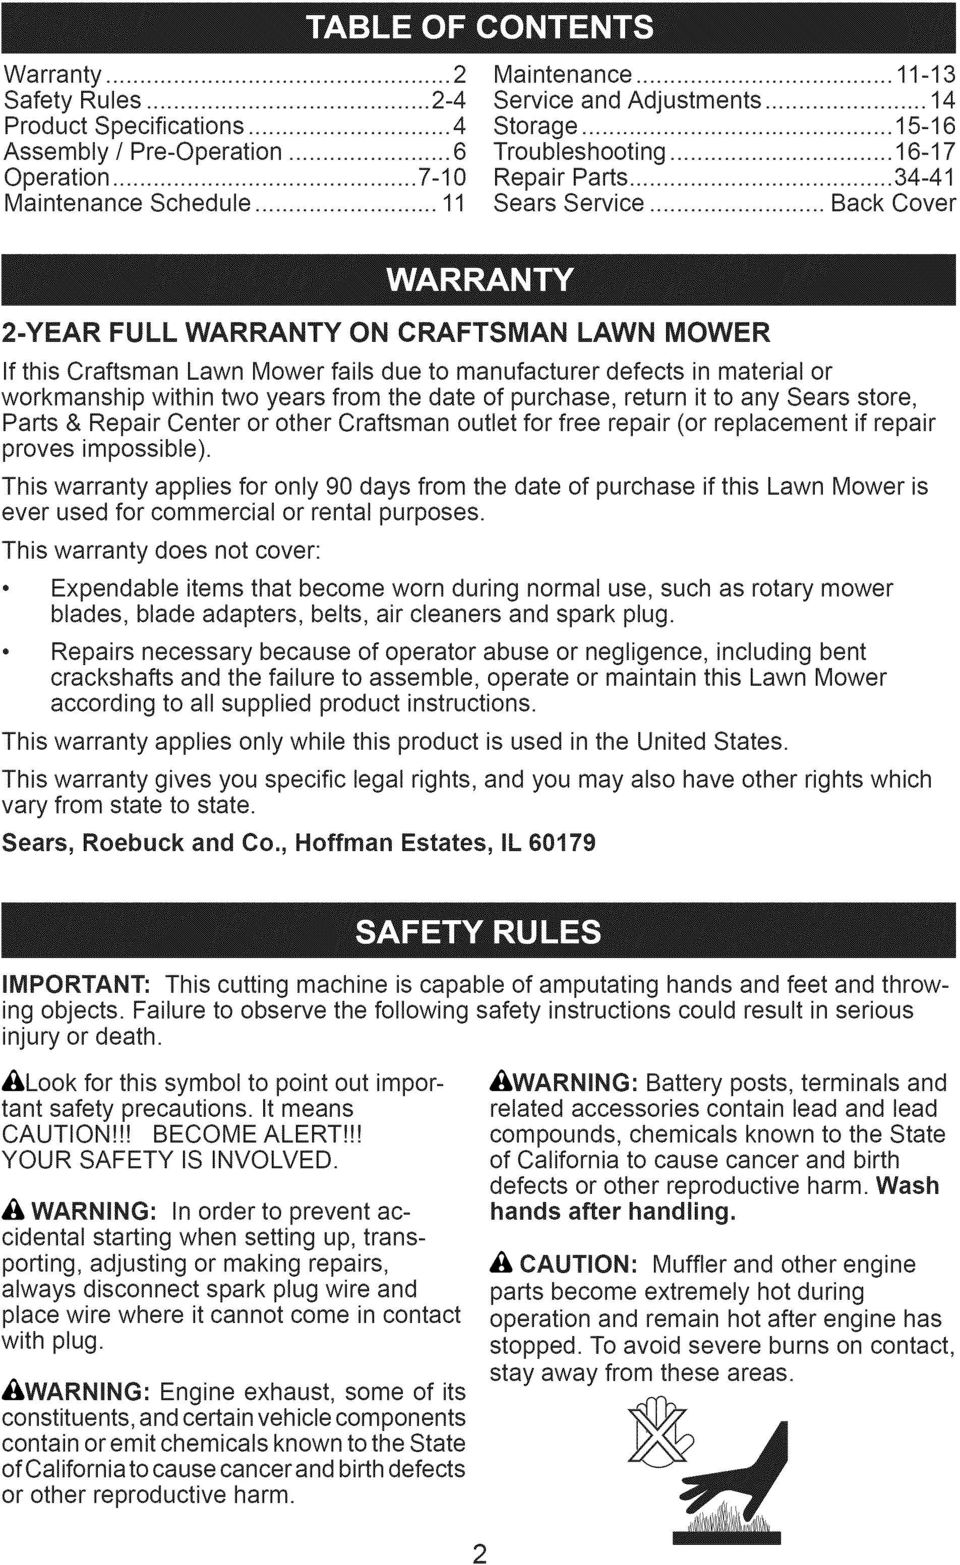 .. Back Cover 2-YEAR FULL WARRANTY ON CRAFTSMAN LAWN MOWER If this Craftsman Lawn Mower fails due to manufacturer defects in material or workmanship within two years from the date of purchase, return